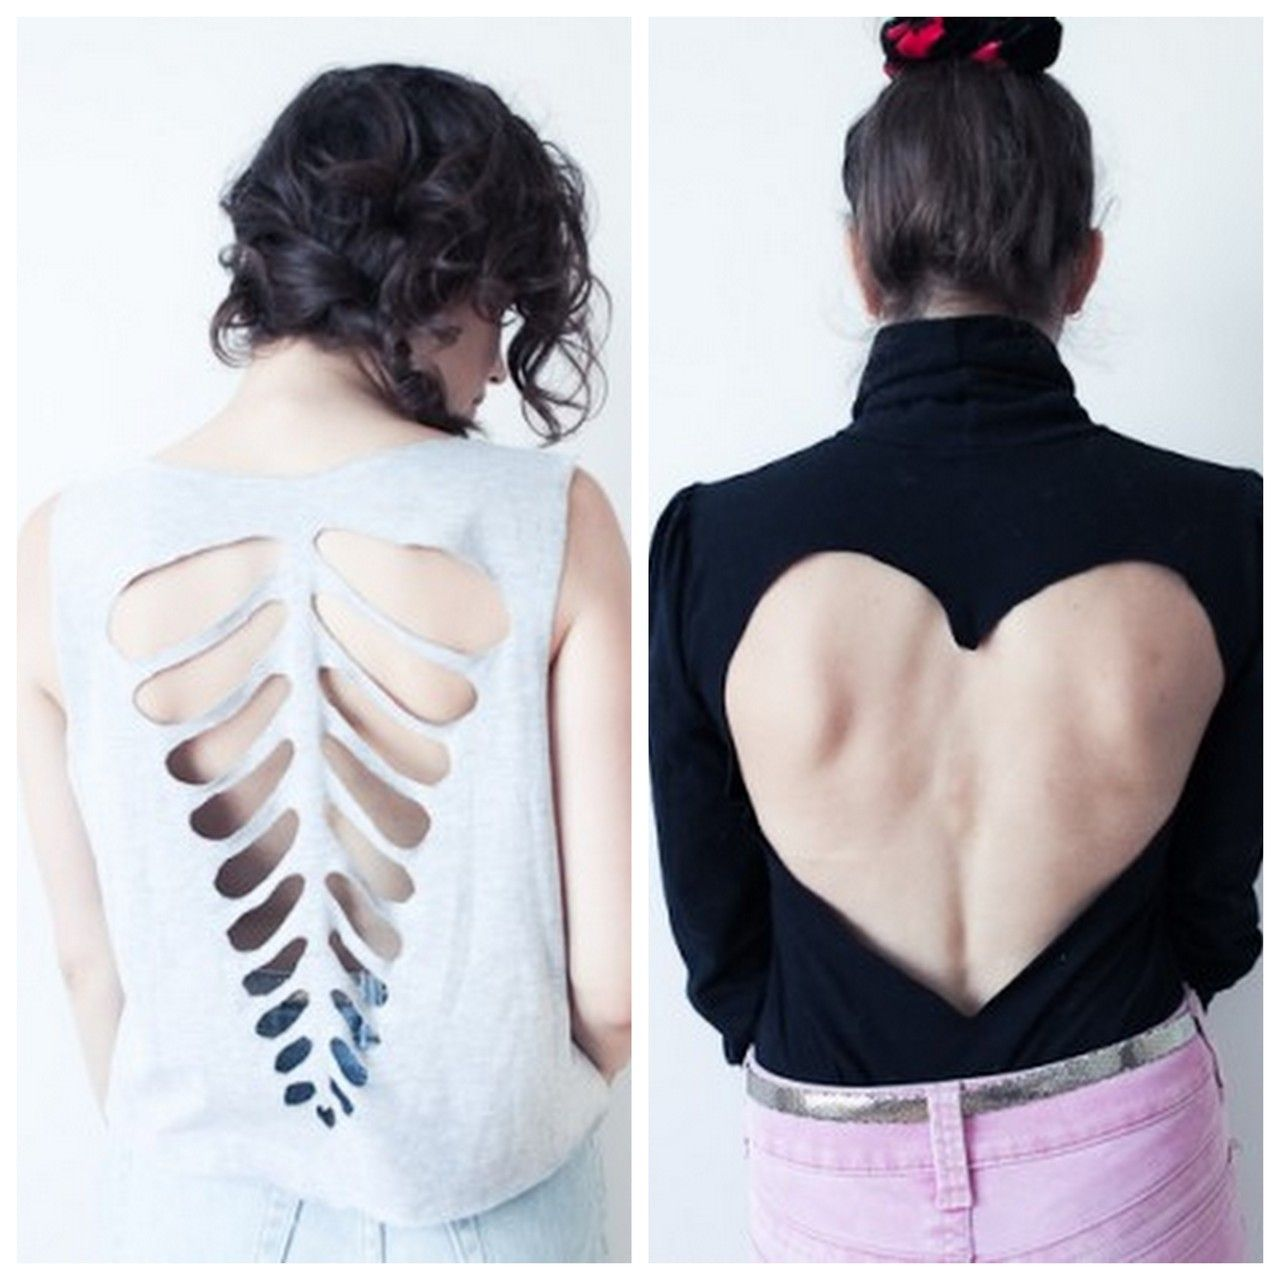 DIY For Tee Shirts | Diy Ribcage And Heart Cut Out Tee Shirt Templates  Templates Can